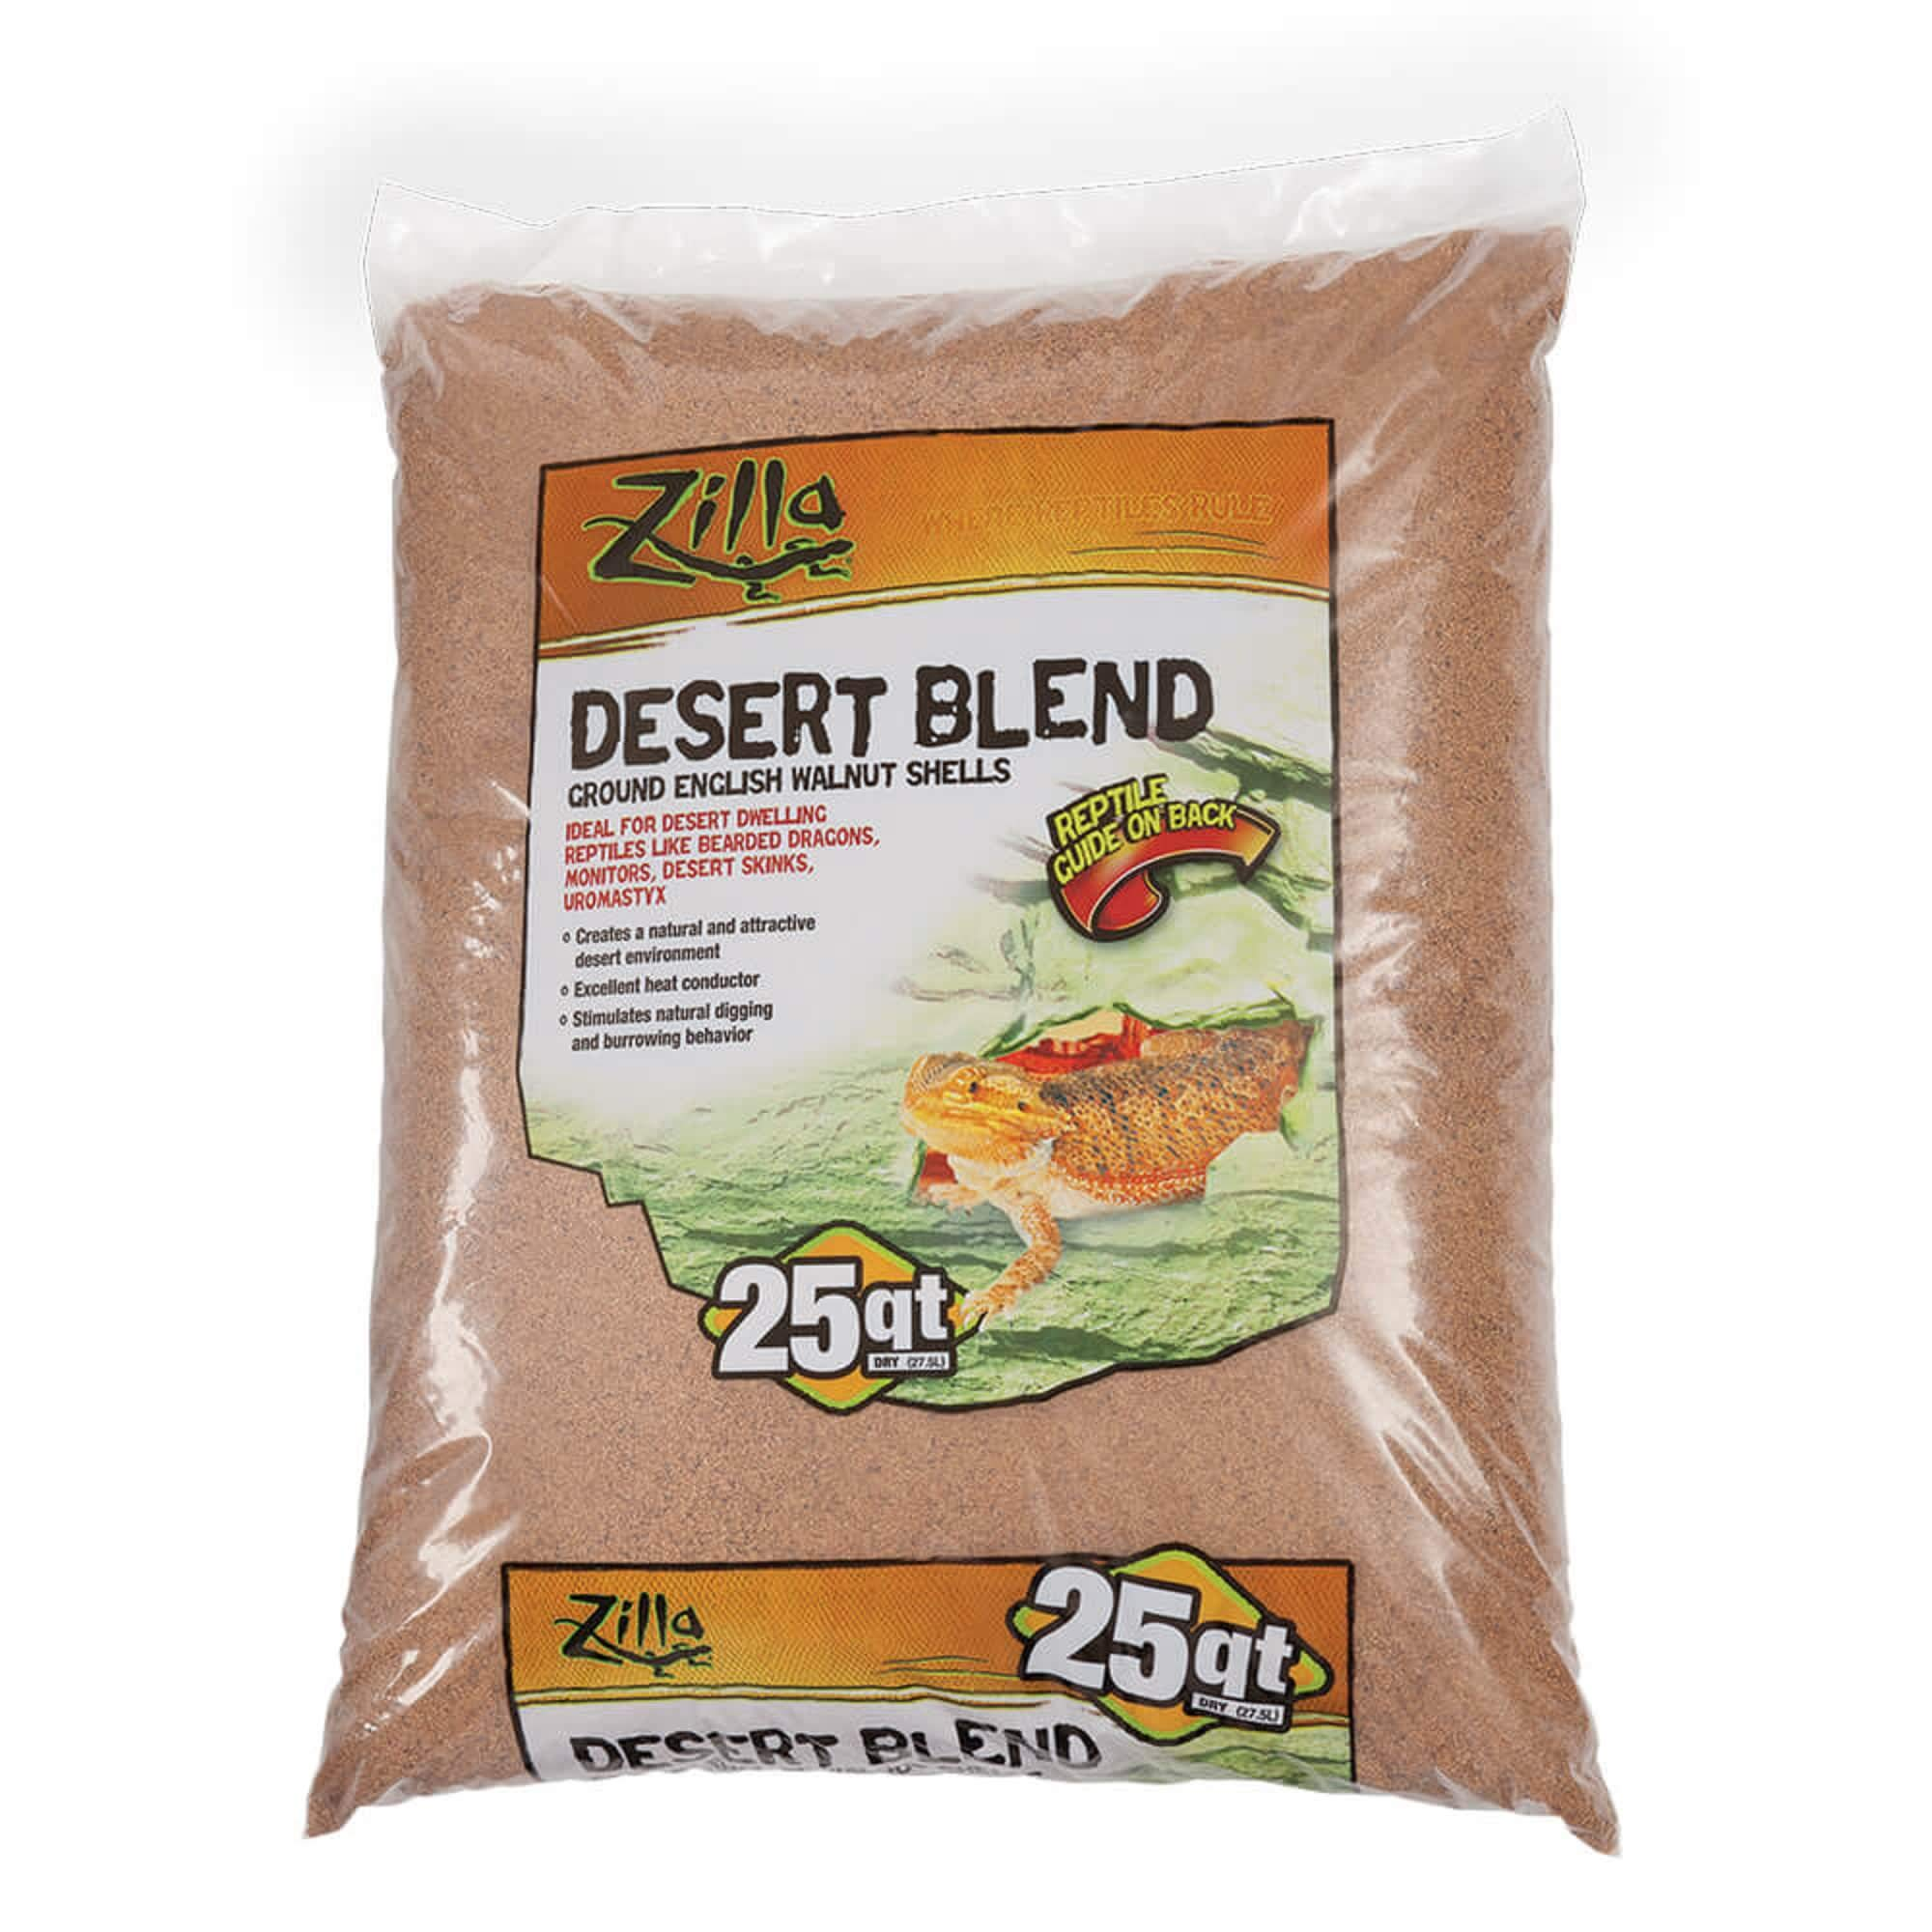 Zilla Ground English Walnut Shells Desert Blend